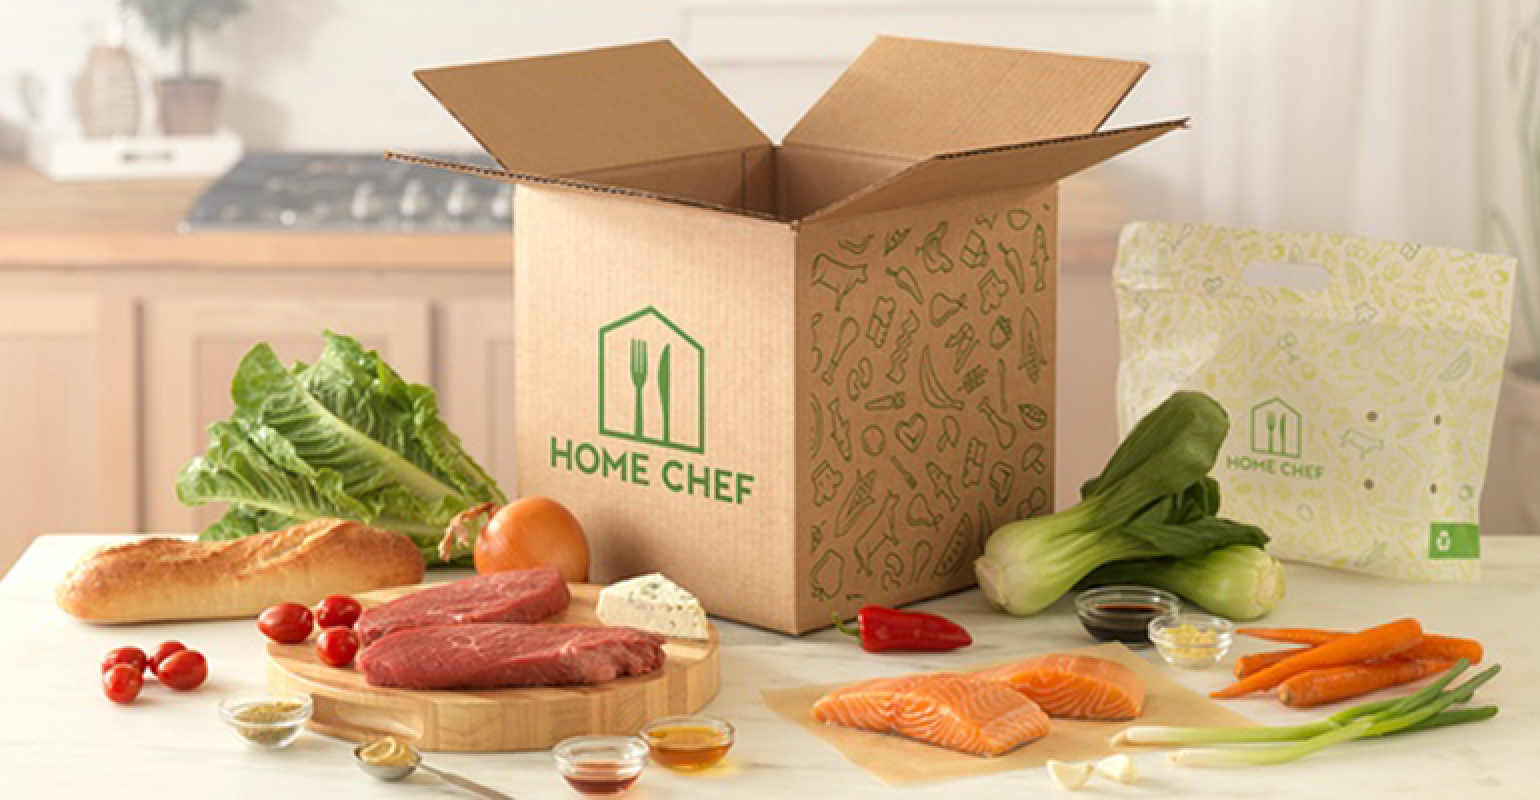 Home Chef food and snacks subscription box